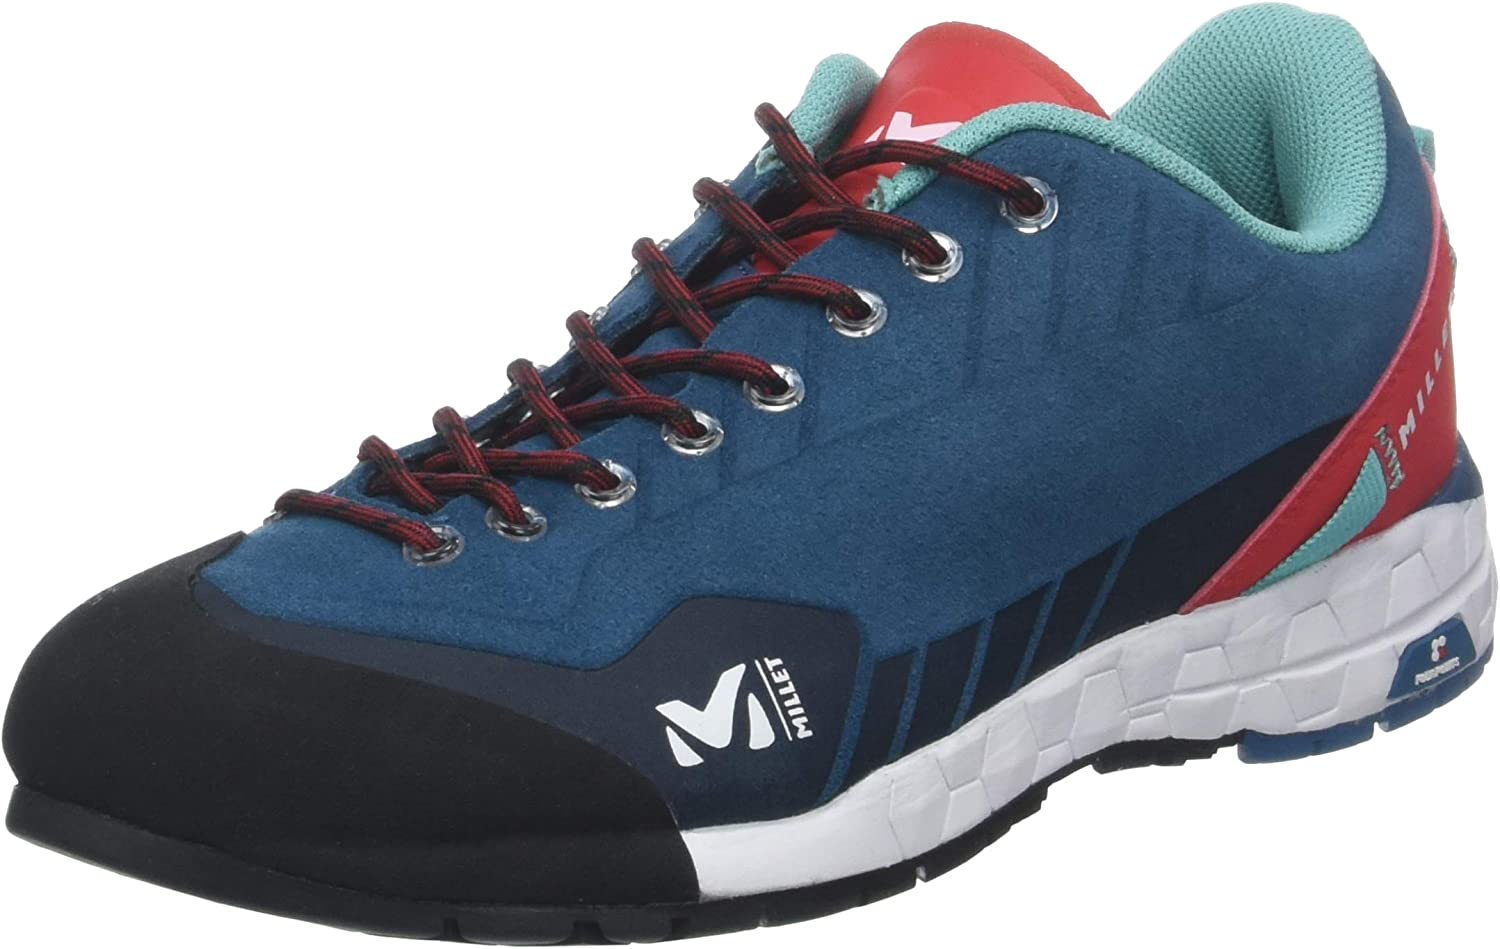 MILLET Women's Long-awaited Low Rise Year-end annual account Climbing Shoes Hiking